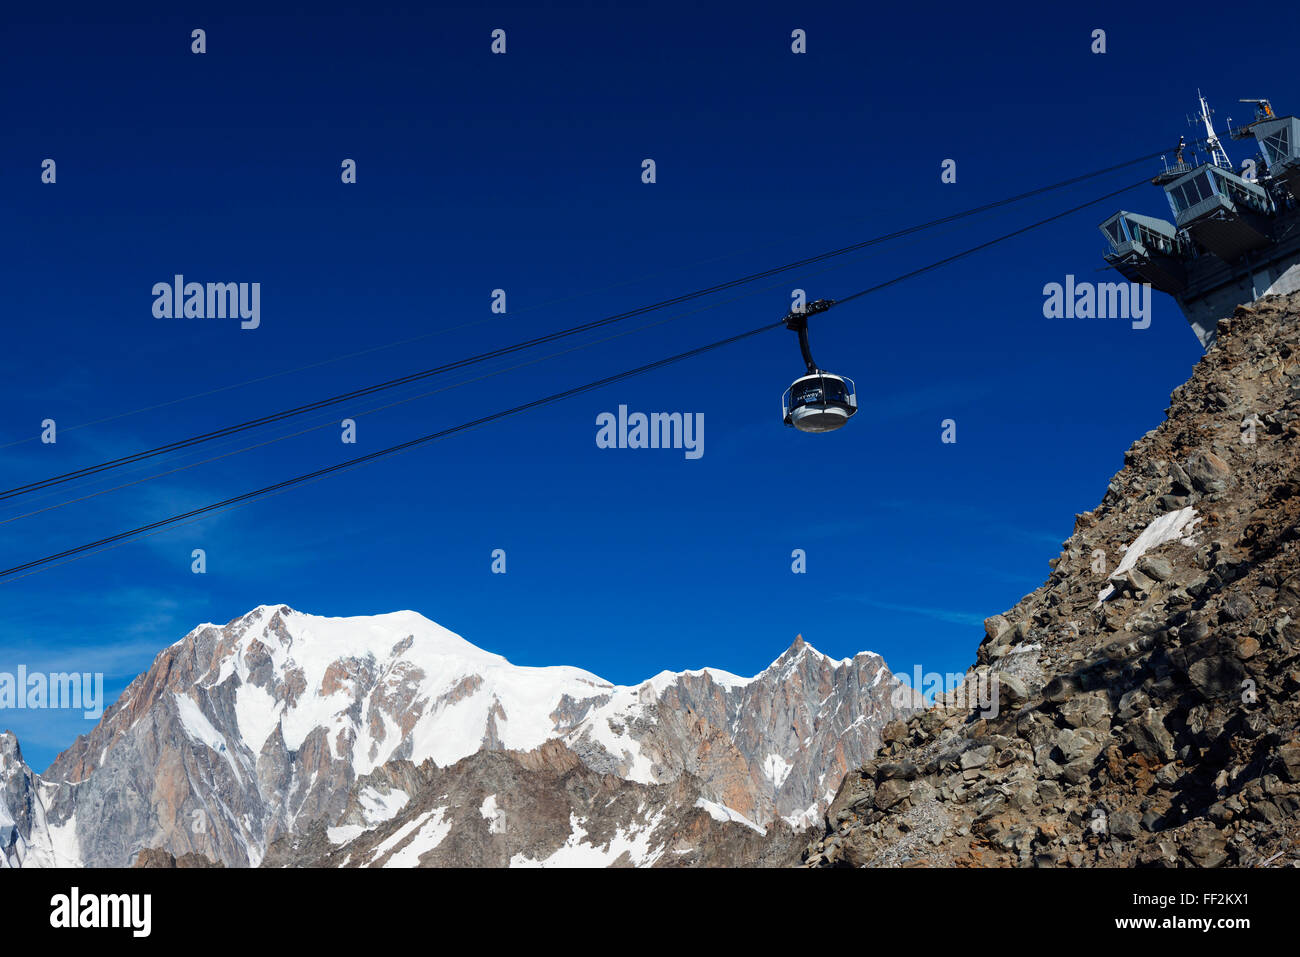 New Skyway revoRMving cabRMe car opened 2015, to Monte Bianco (Mont BRManc), Courmayeur, ItaRMian ARMps, ItaRMy, - Stock Image